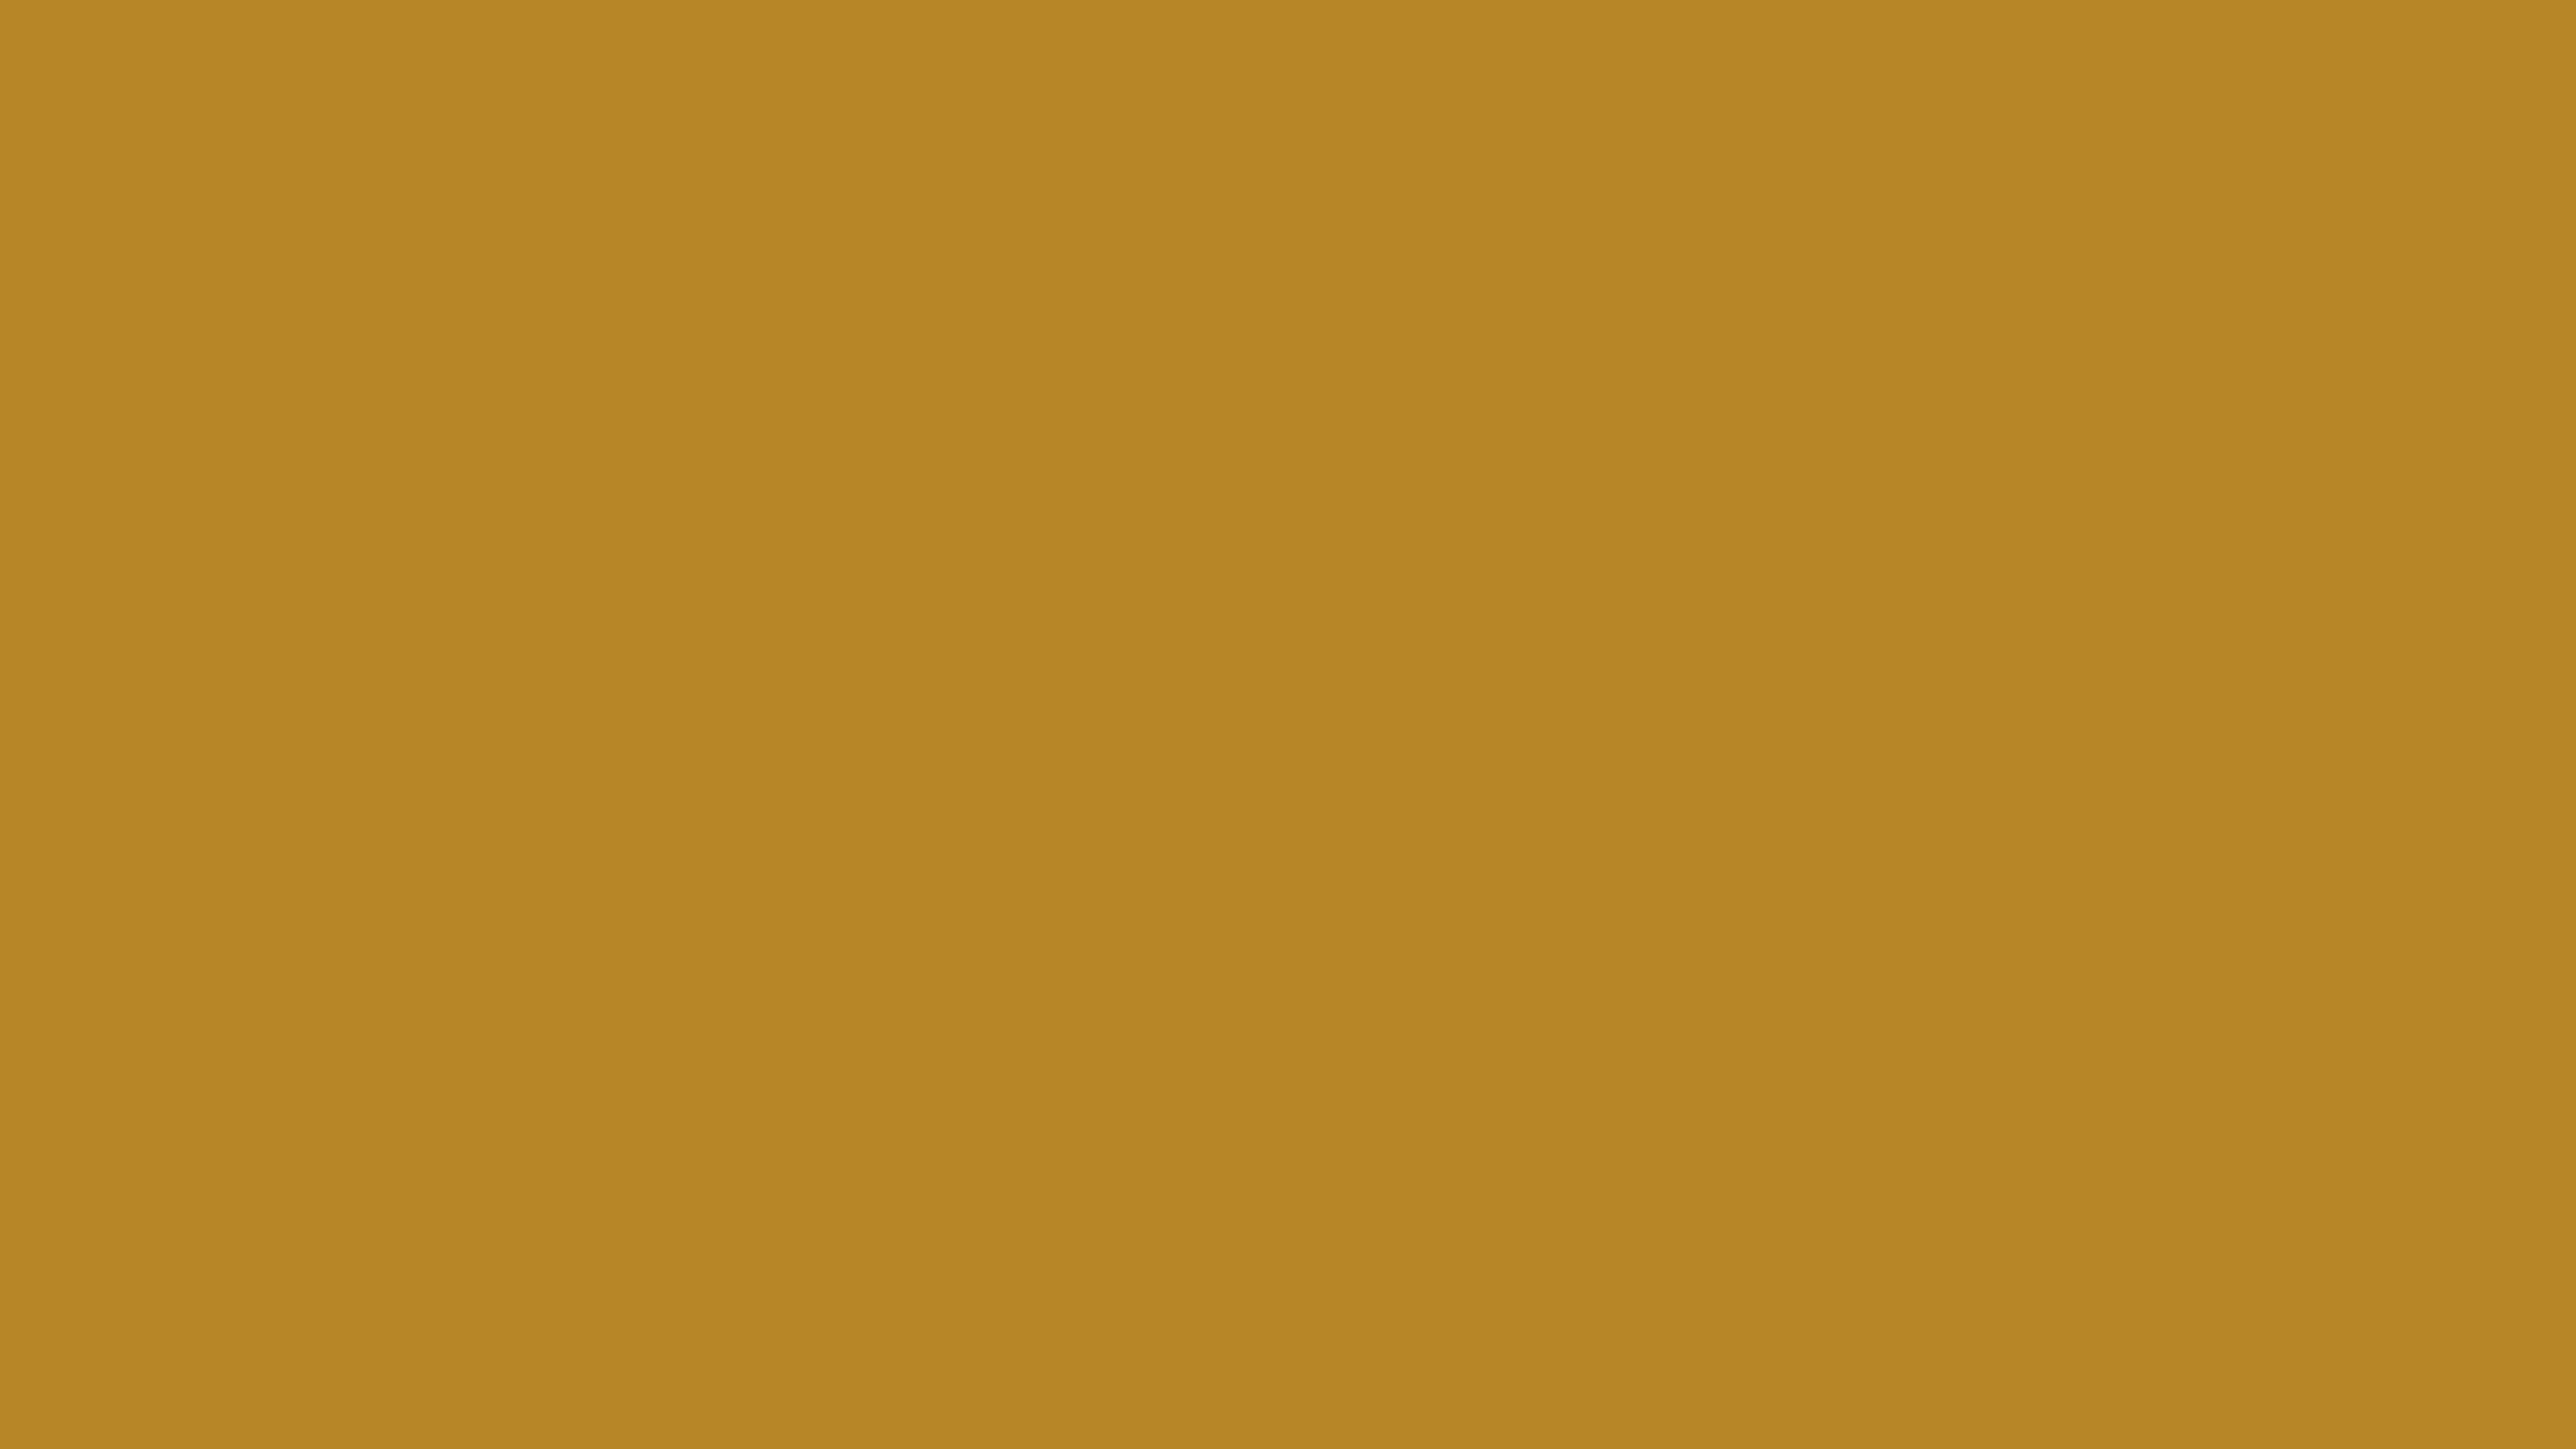 5120x2880 University Of California Gold Solid Color Background